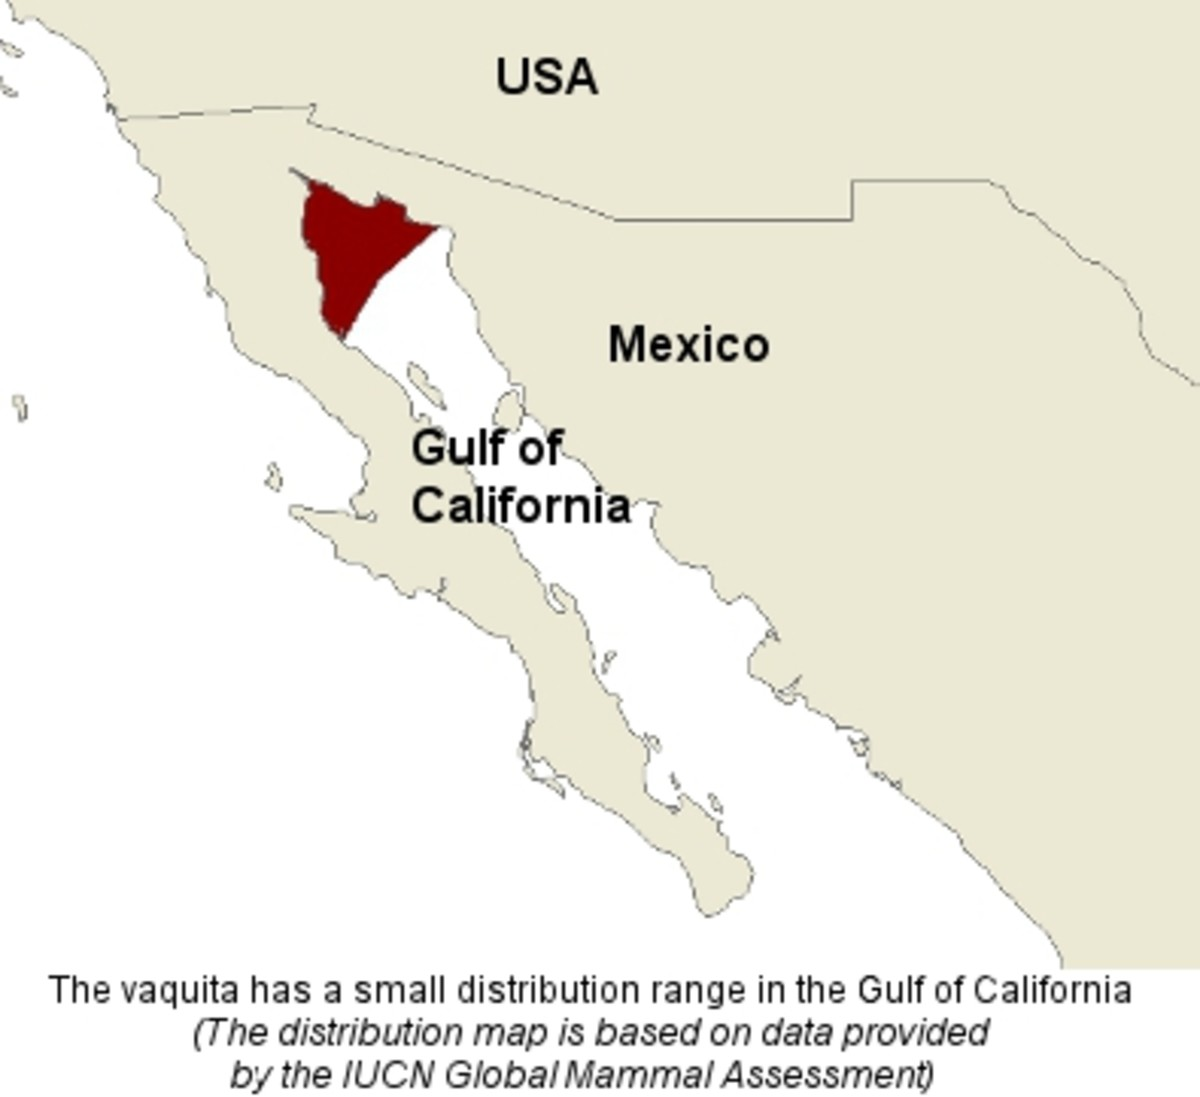 Vaquita distribution range